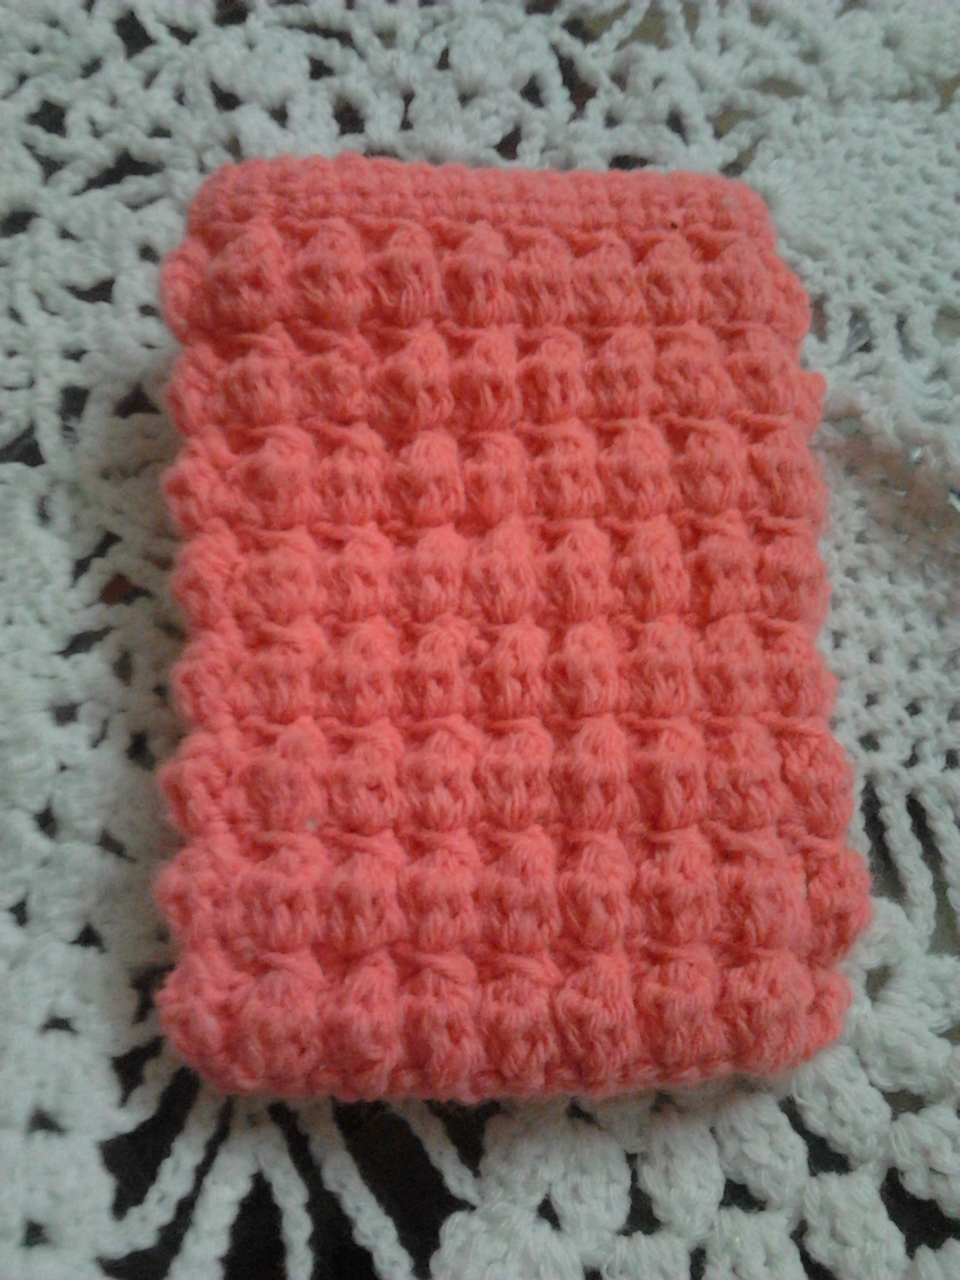 My Craft Works Puff Stitch Cell Phone Cover